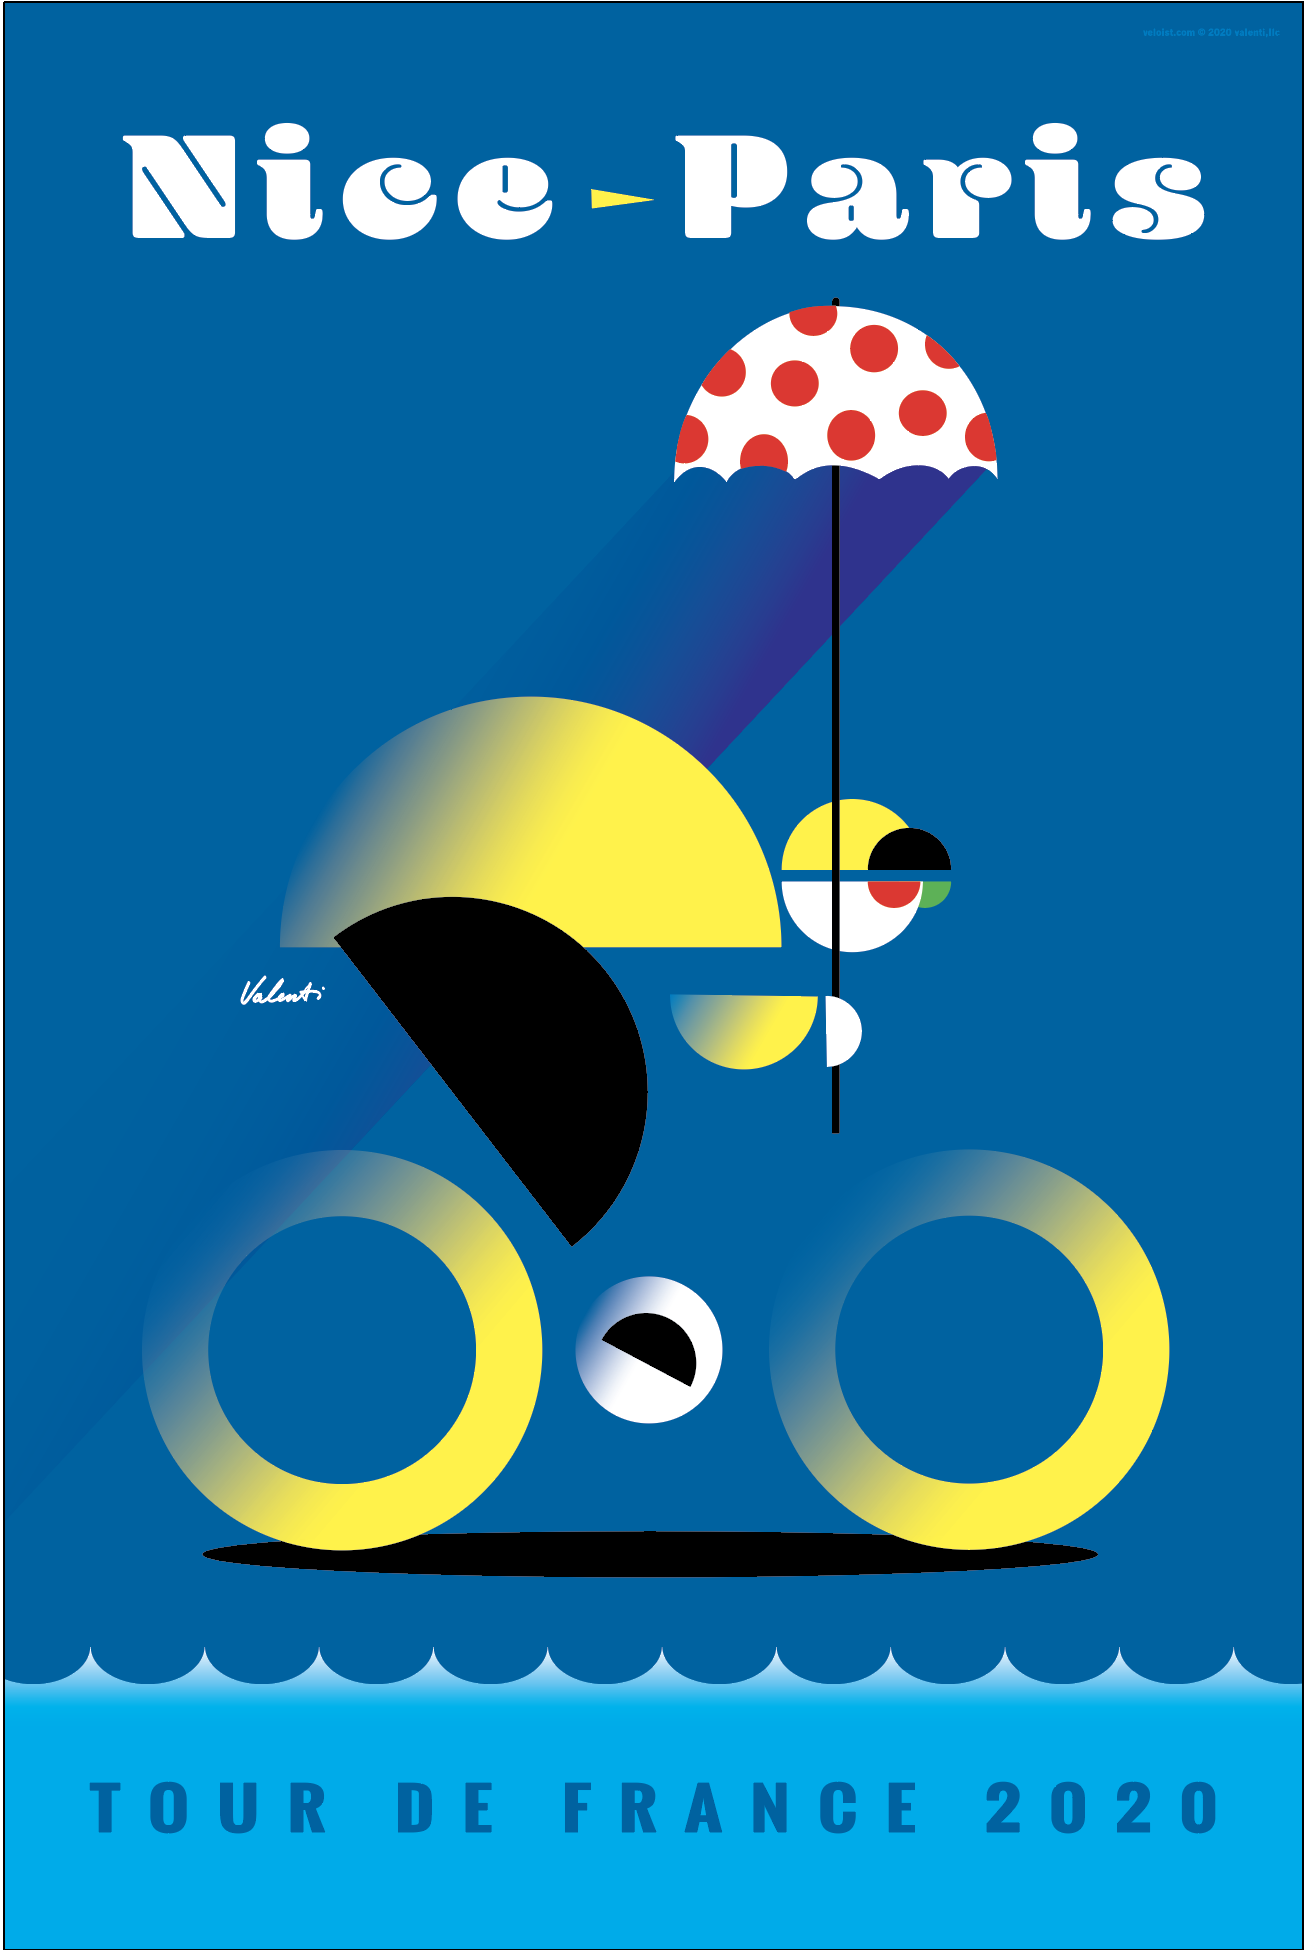 Pin by Veloist on Tour de France Art and Posters in 2020